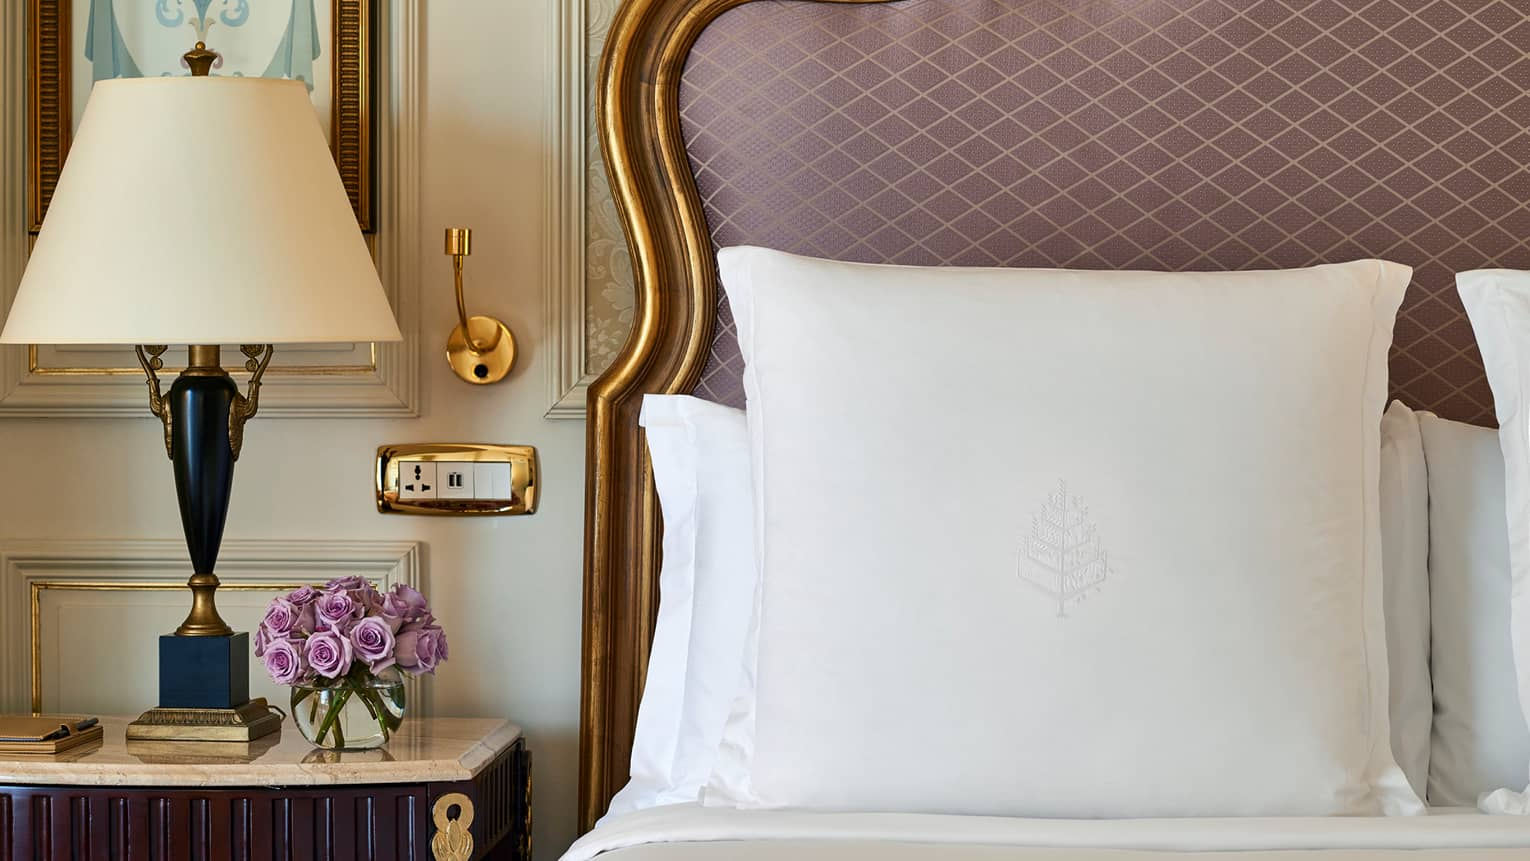 Close-up of white pillows against upholstered pink headboard with gold wood trim